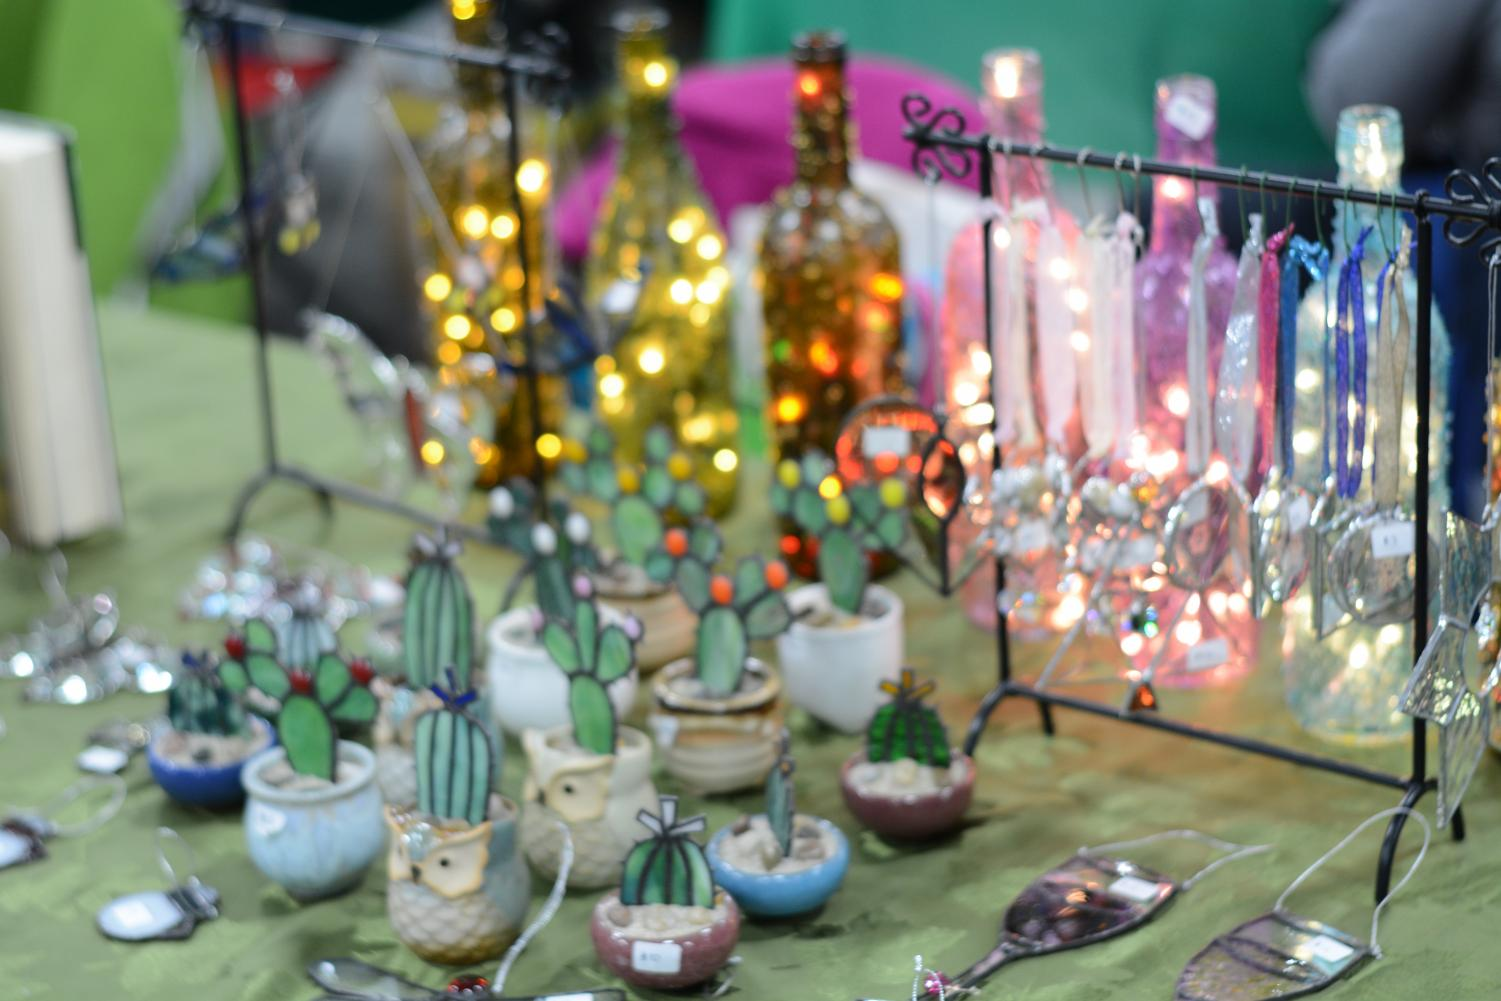 A vendor sets up a display of glass and lights.